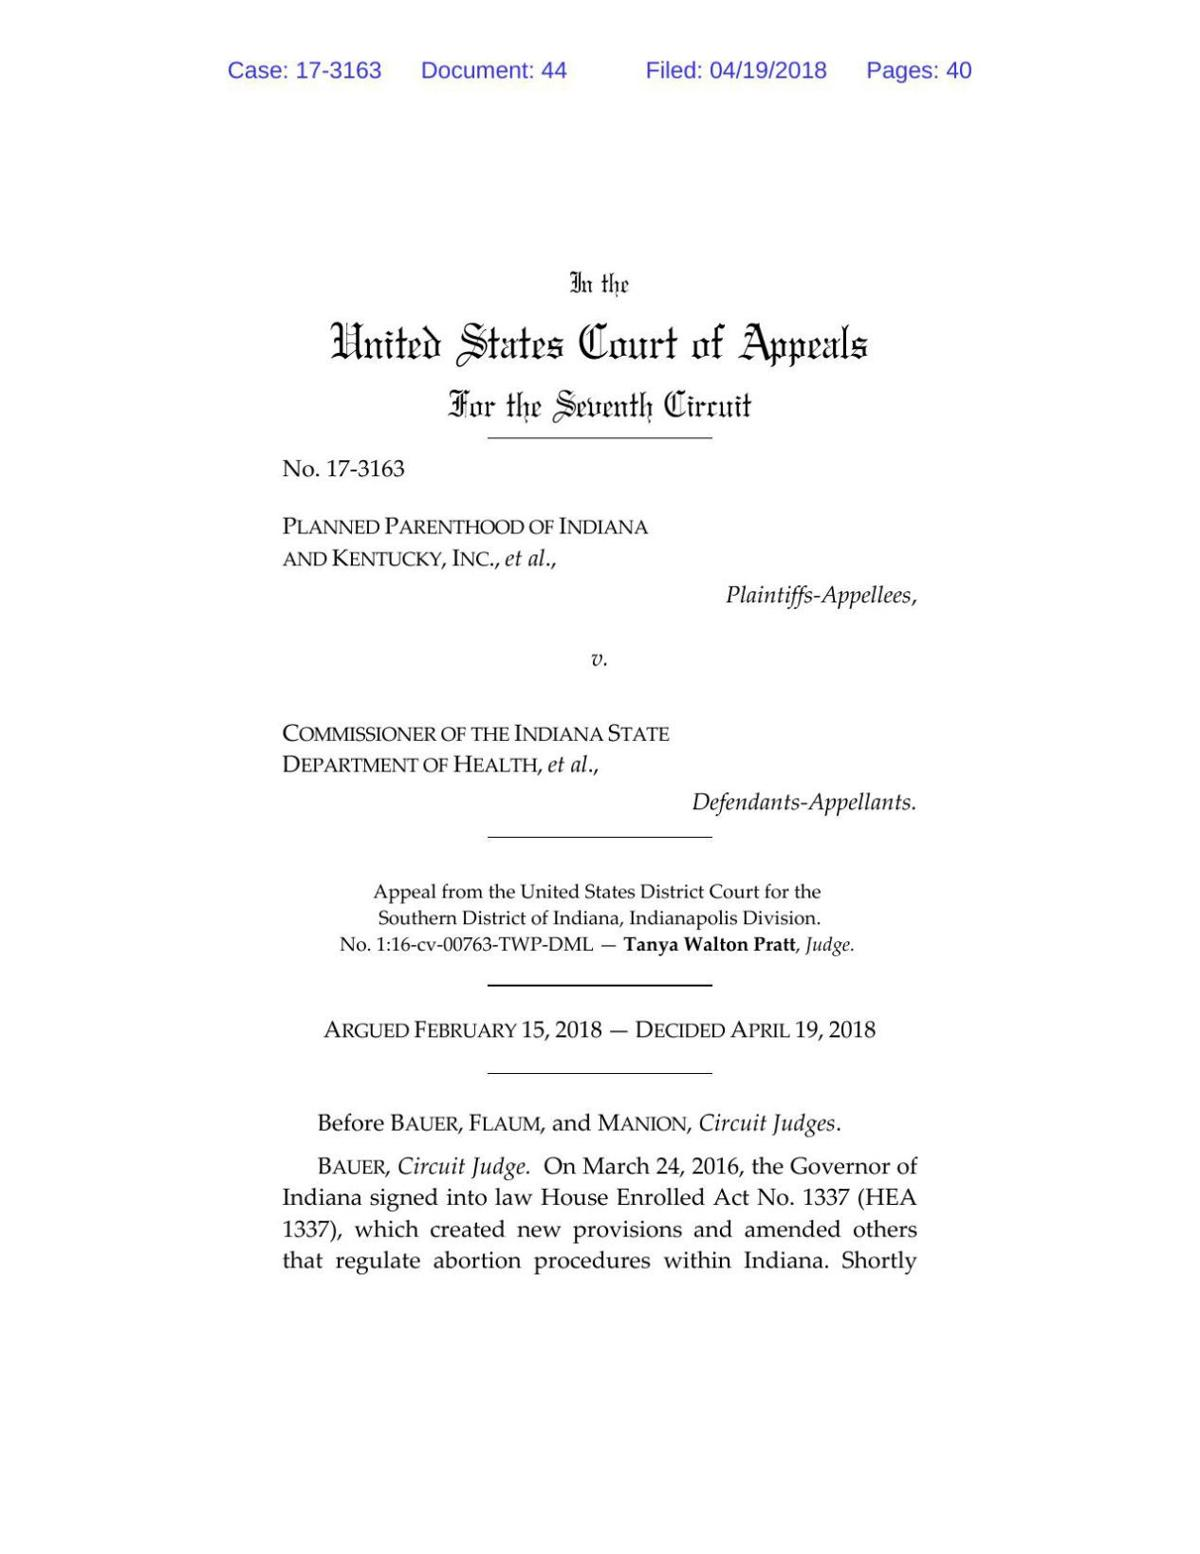 PPINK v. Indiana Health Commissioner ruling of 7th Circuit Court of Appeals